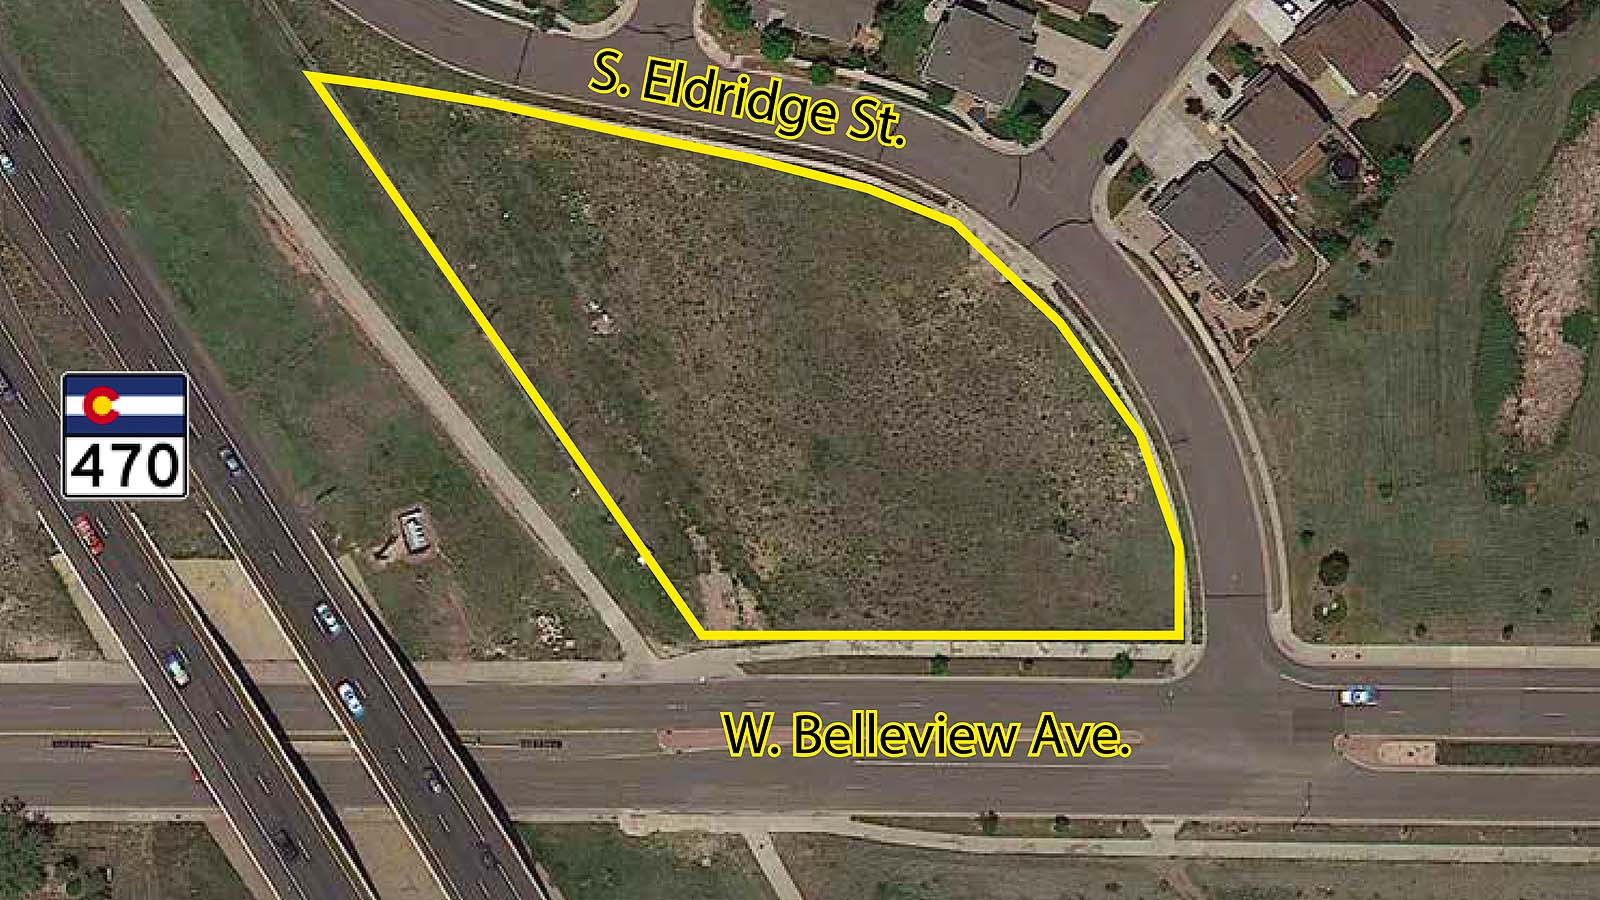 Vacant Land for Sale C-470 Belleview Ave